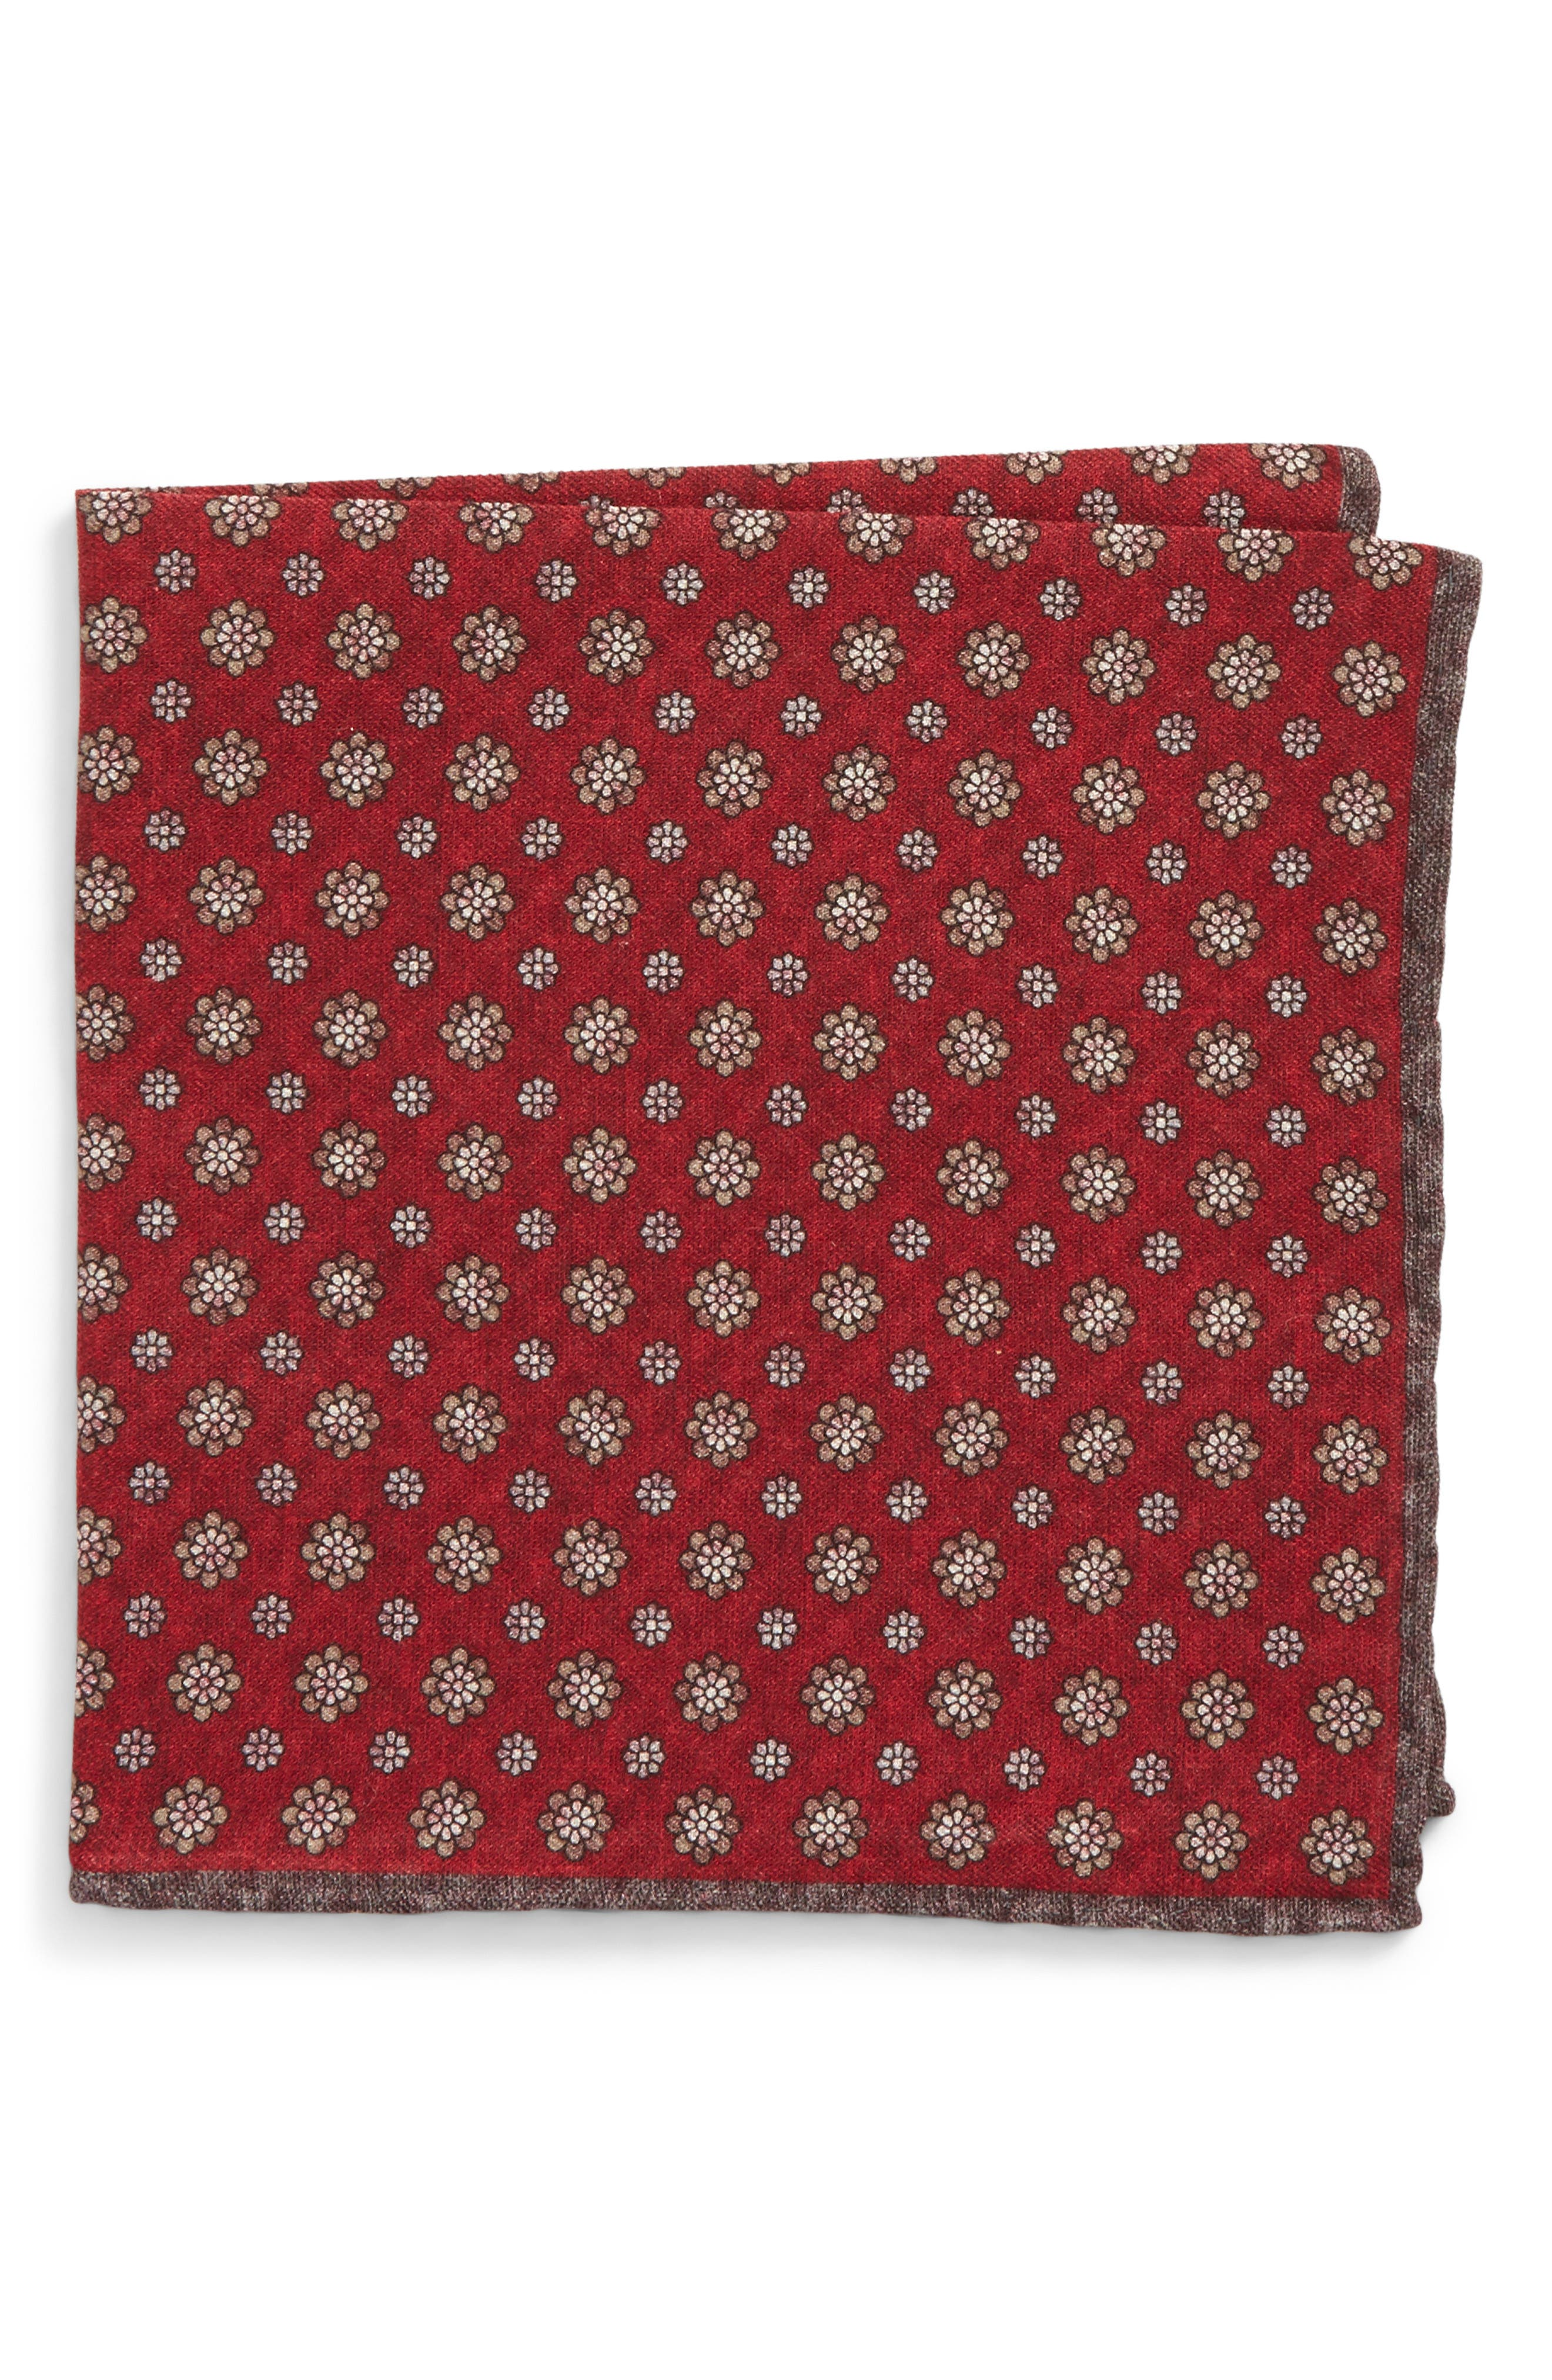 Medallion Wool & Cotton Pocket Square,                         Main,                         color, Red